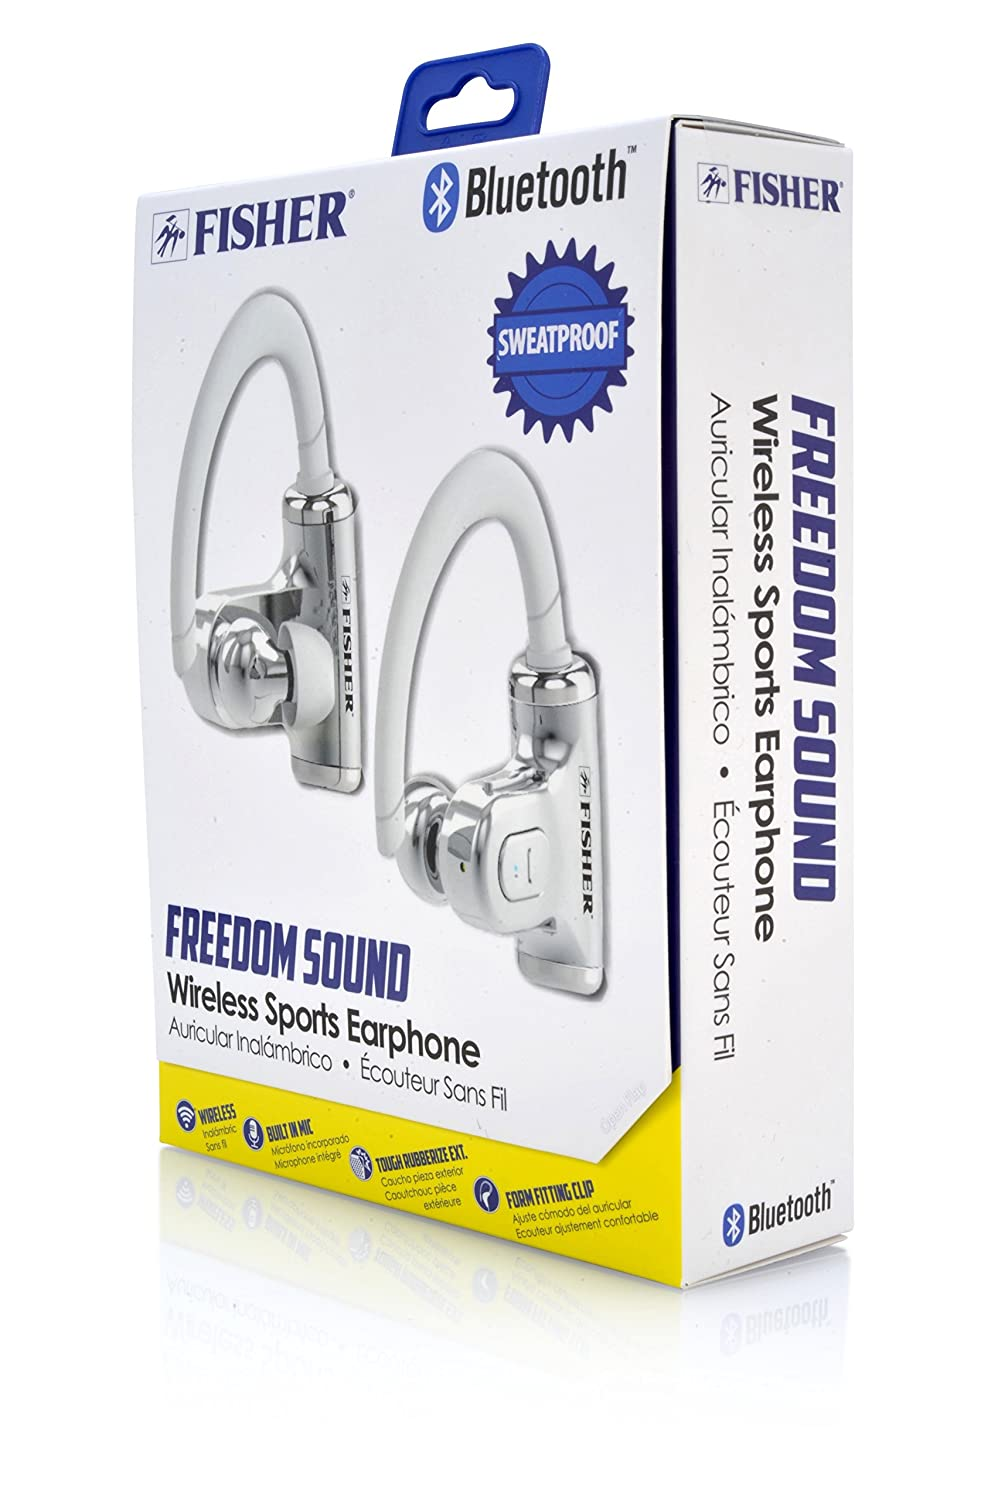 Amazon.com: Fisher Wireless Sports Earphone, Sweatproof, Form Fitting Clip to Ear, Built-In Microphone: Electronics